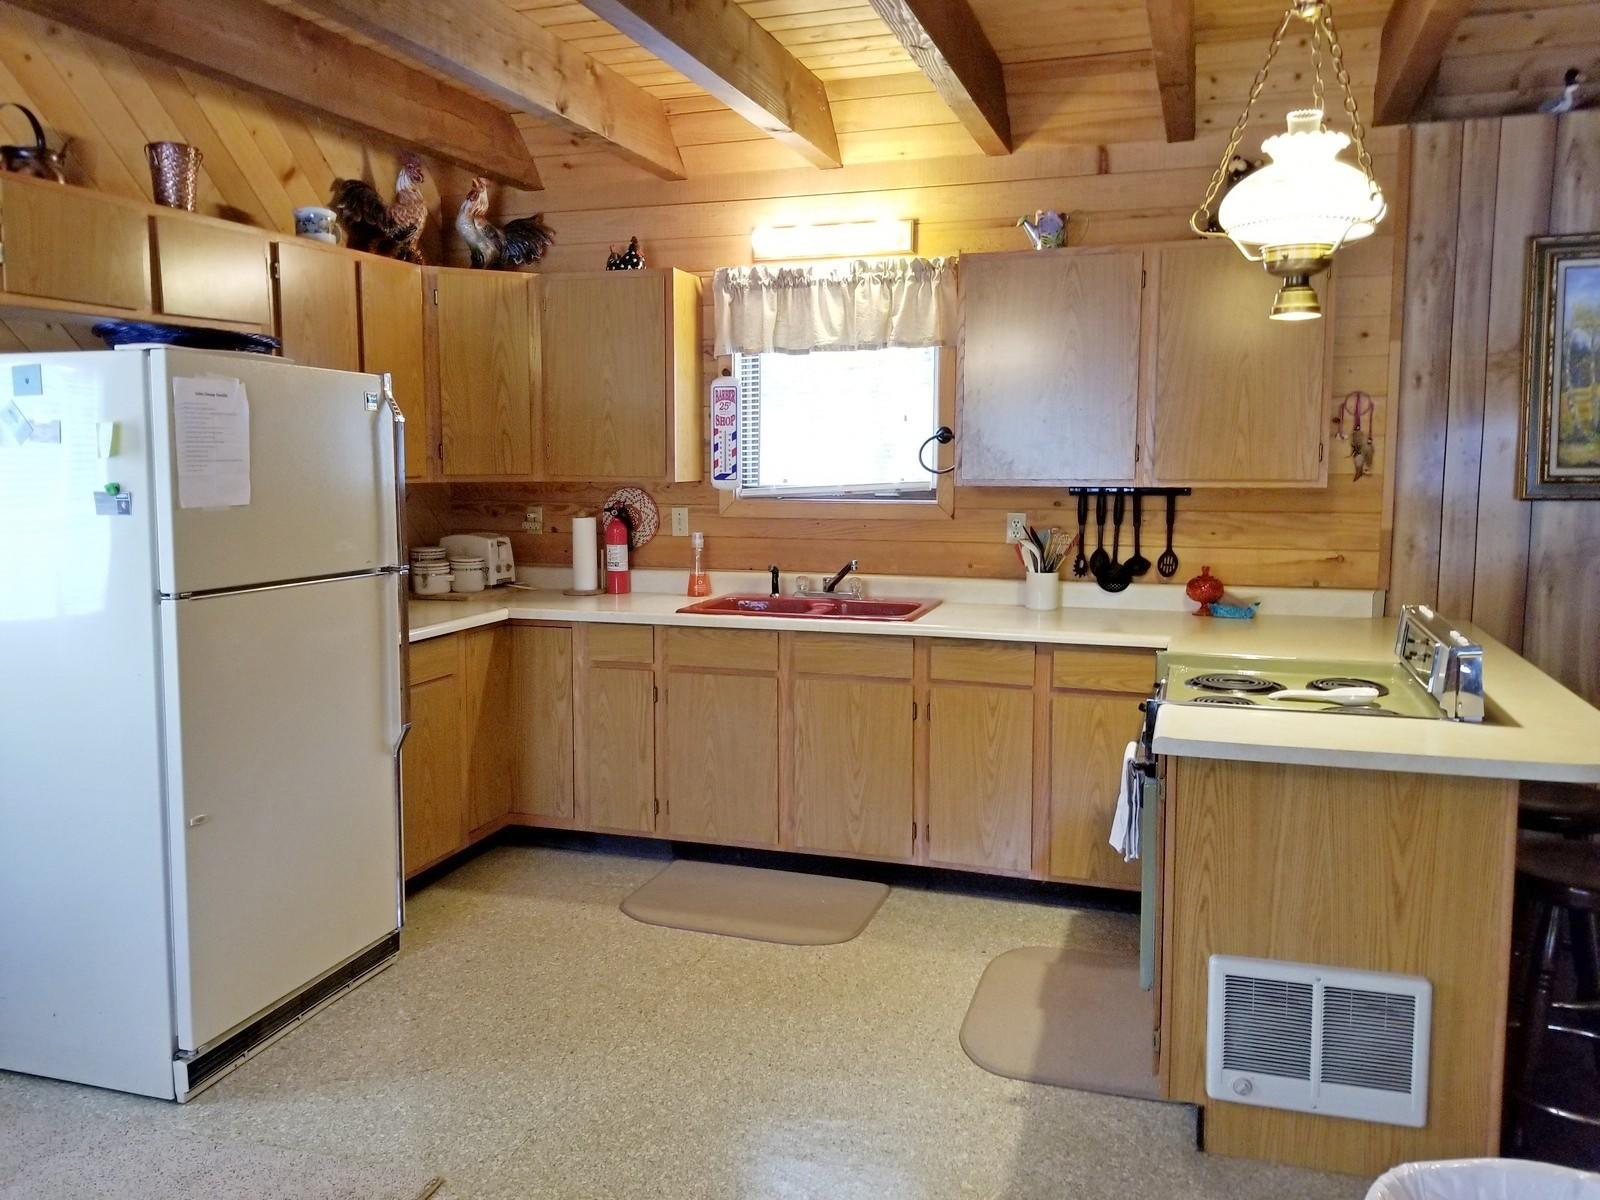 86351 95 Whispering Pines  Duck Creek Village UT